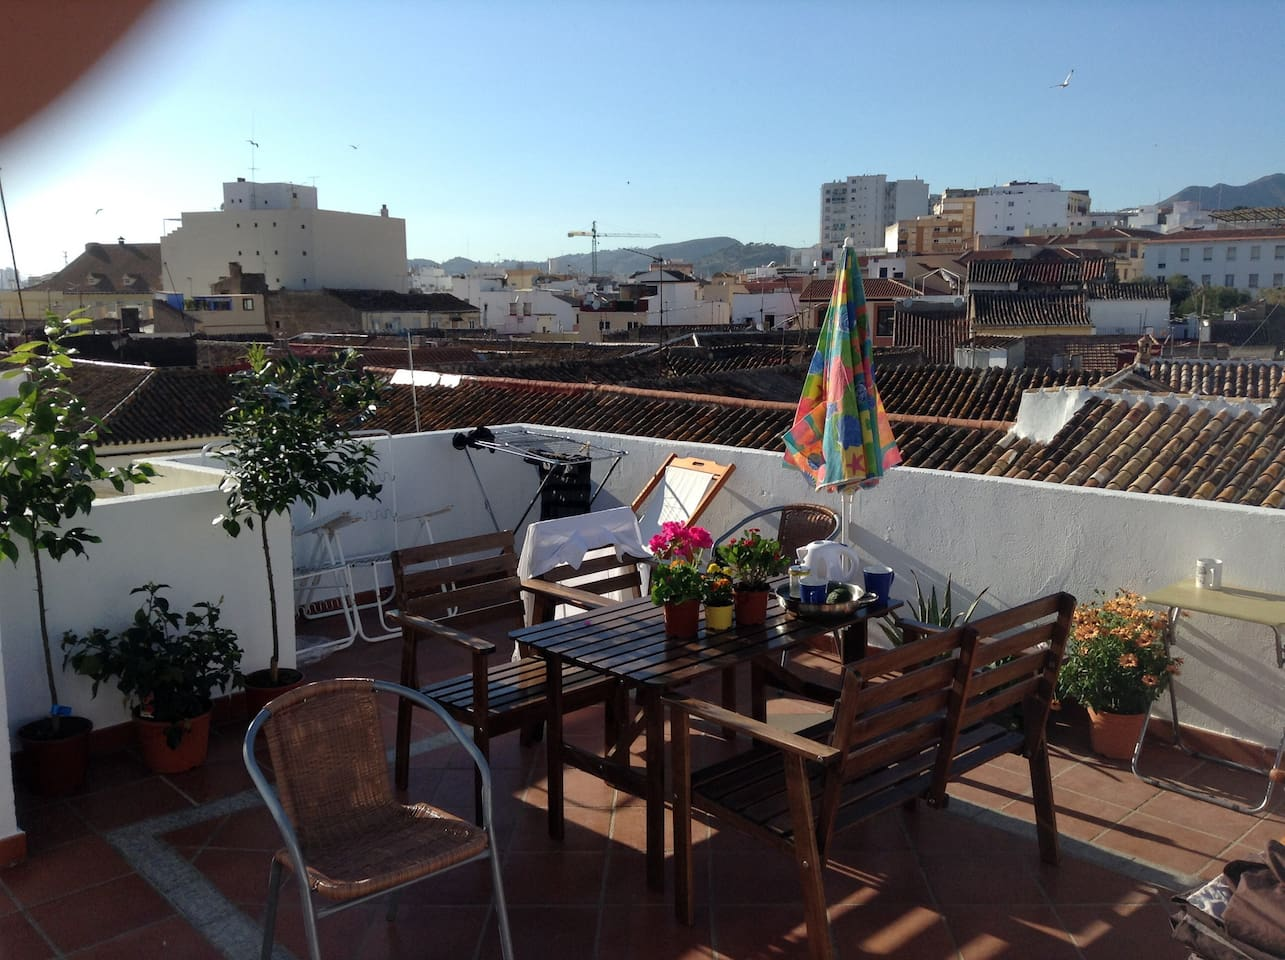 Private rooftop terrace. Ping pong area as well.